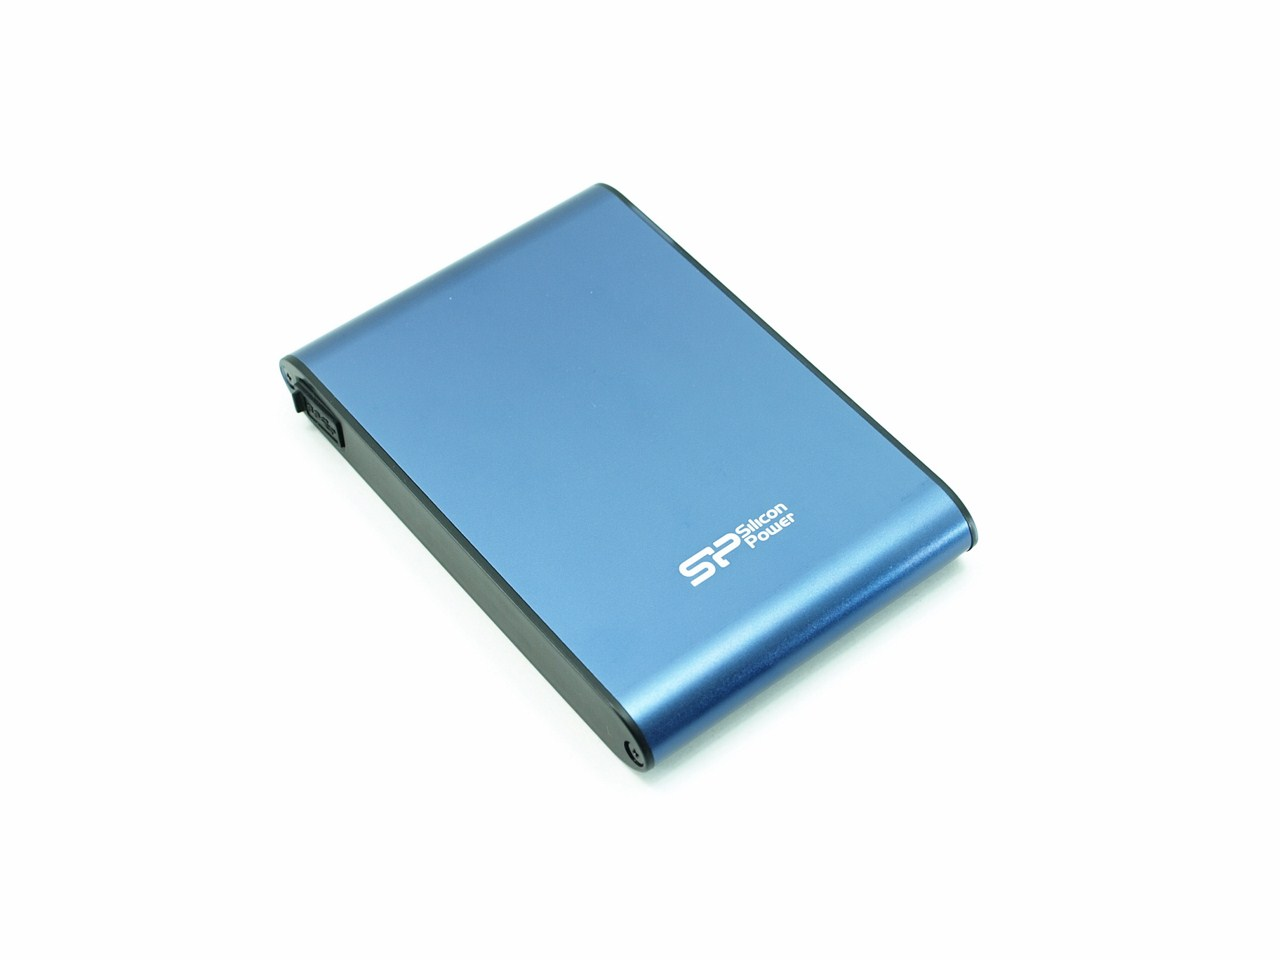 Silicon Power Armor A80 1tb Usb 30 Portable Hard Drive Review Hardisk Eksternal Transcend 1 Tb Storejet 25h30 Article Index